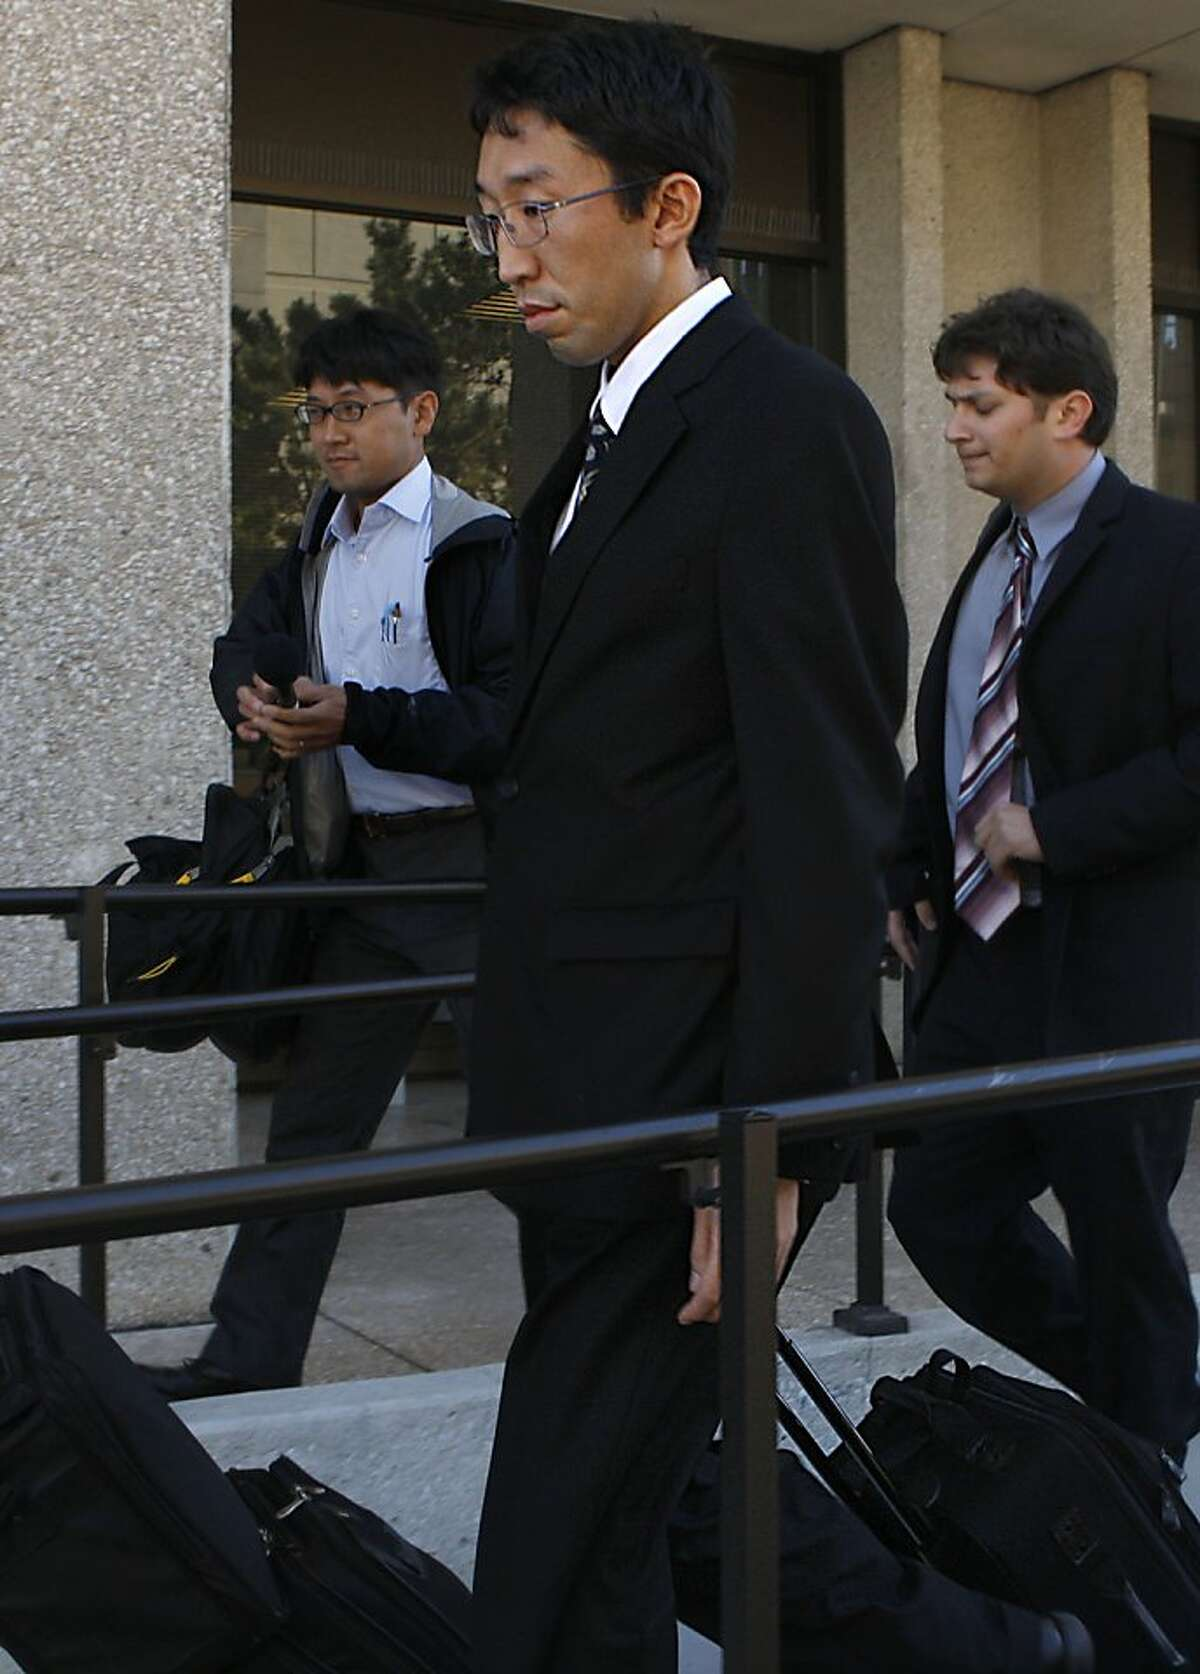 Vice consul for Japan Yoshiaki Nagaya, accused of beating his bride of 18 months, leaving his hearing in Redwood City, Calif., on Monday, August 27, 2012.